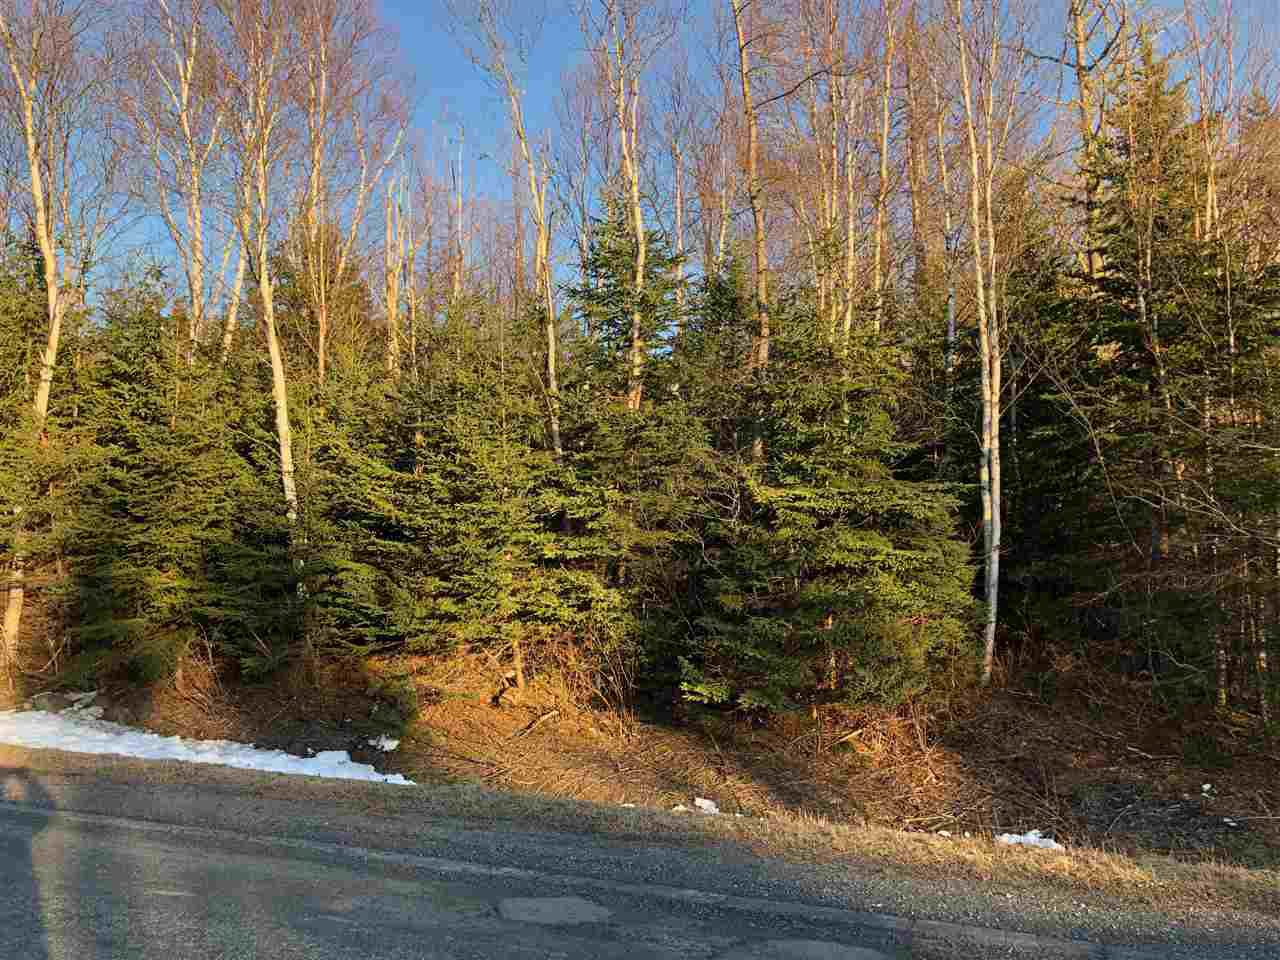 Main Photo: Lot 8 Brickyard Road in Mira Gut: 211-Albert Bridge / Mira Vacant Land for sale (Cape Breton)  : MLS®# 202006918